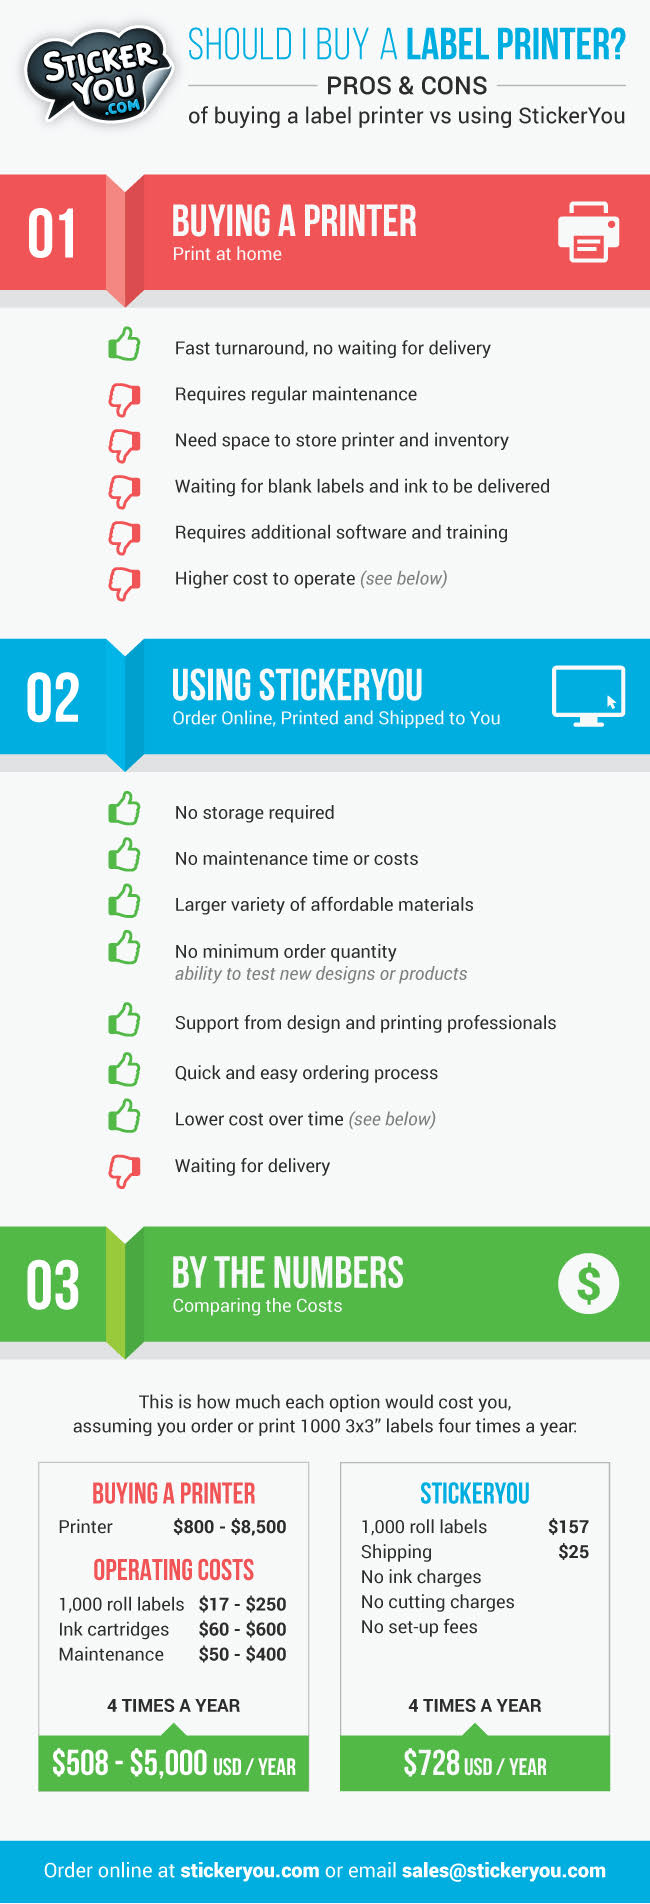 Printer Vs StickerYou Infographic